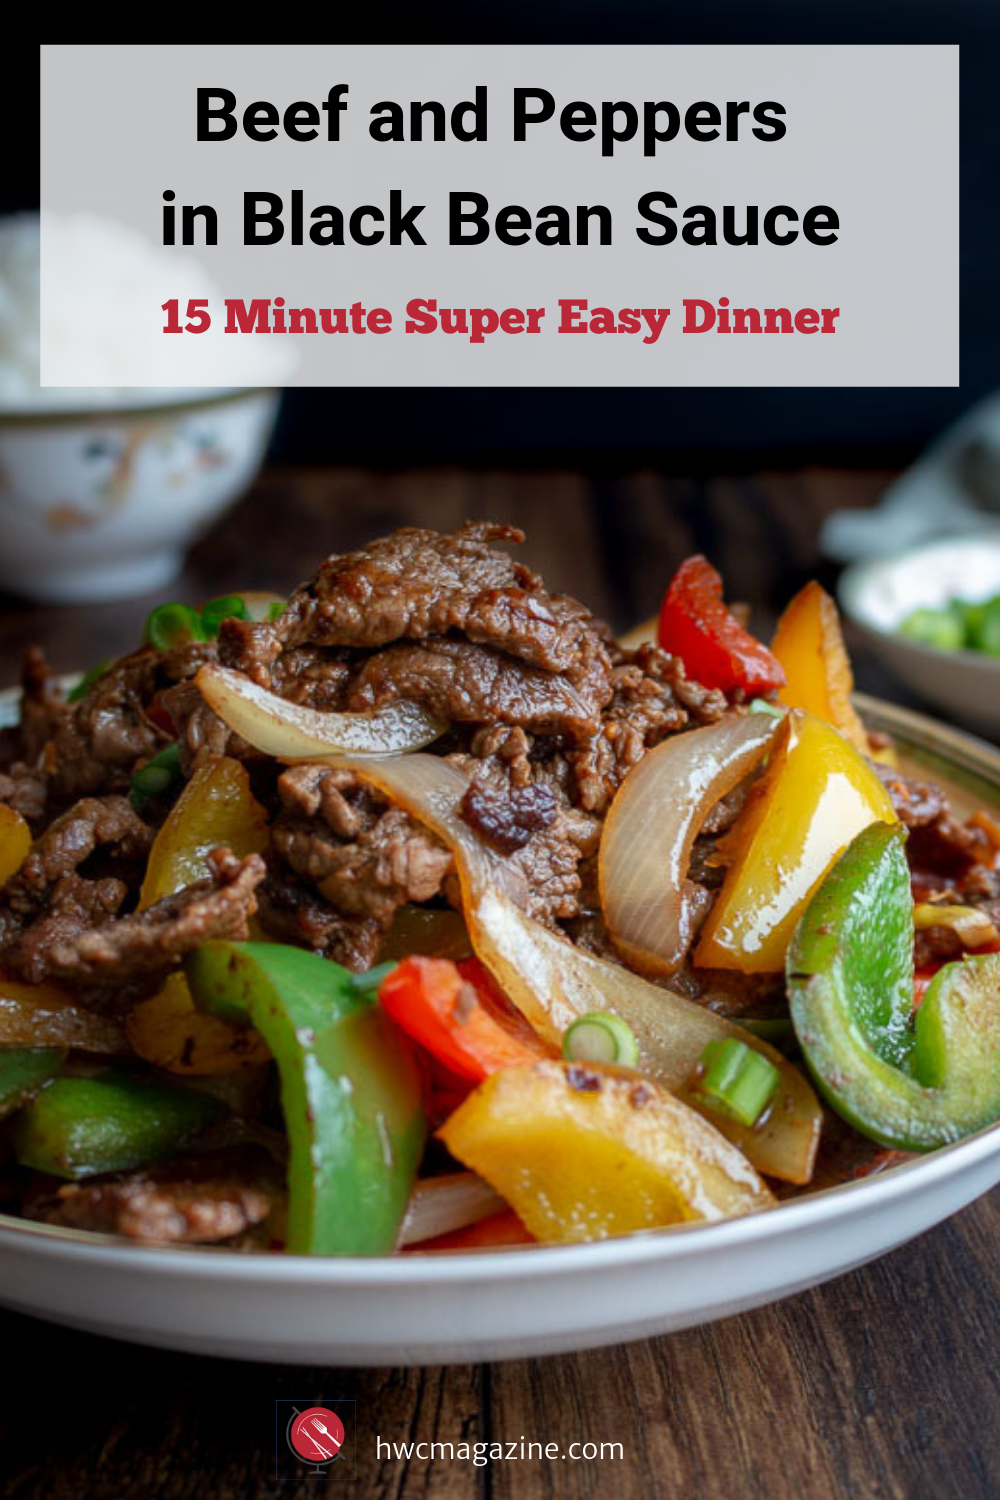 Beef and Peppers in Black Bean Sauce is spicy Chinese recipe with tender melt in your mouth beef that can be on your table, including rice, in about 15 minutes. #chinese #easyrecipe #asian #beef #peppers #blackbeansauce #stirfry #hwcmagazine / https://www.hwcmagazine.com